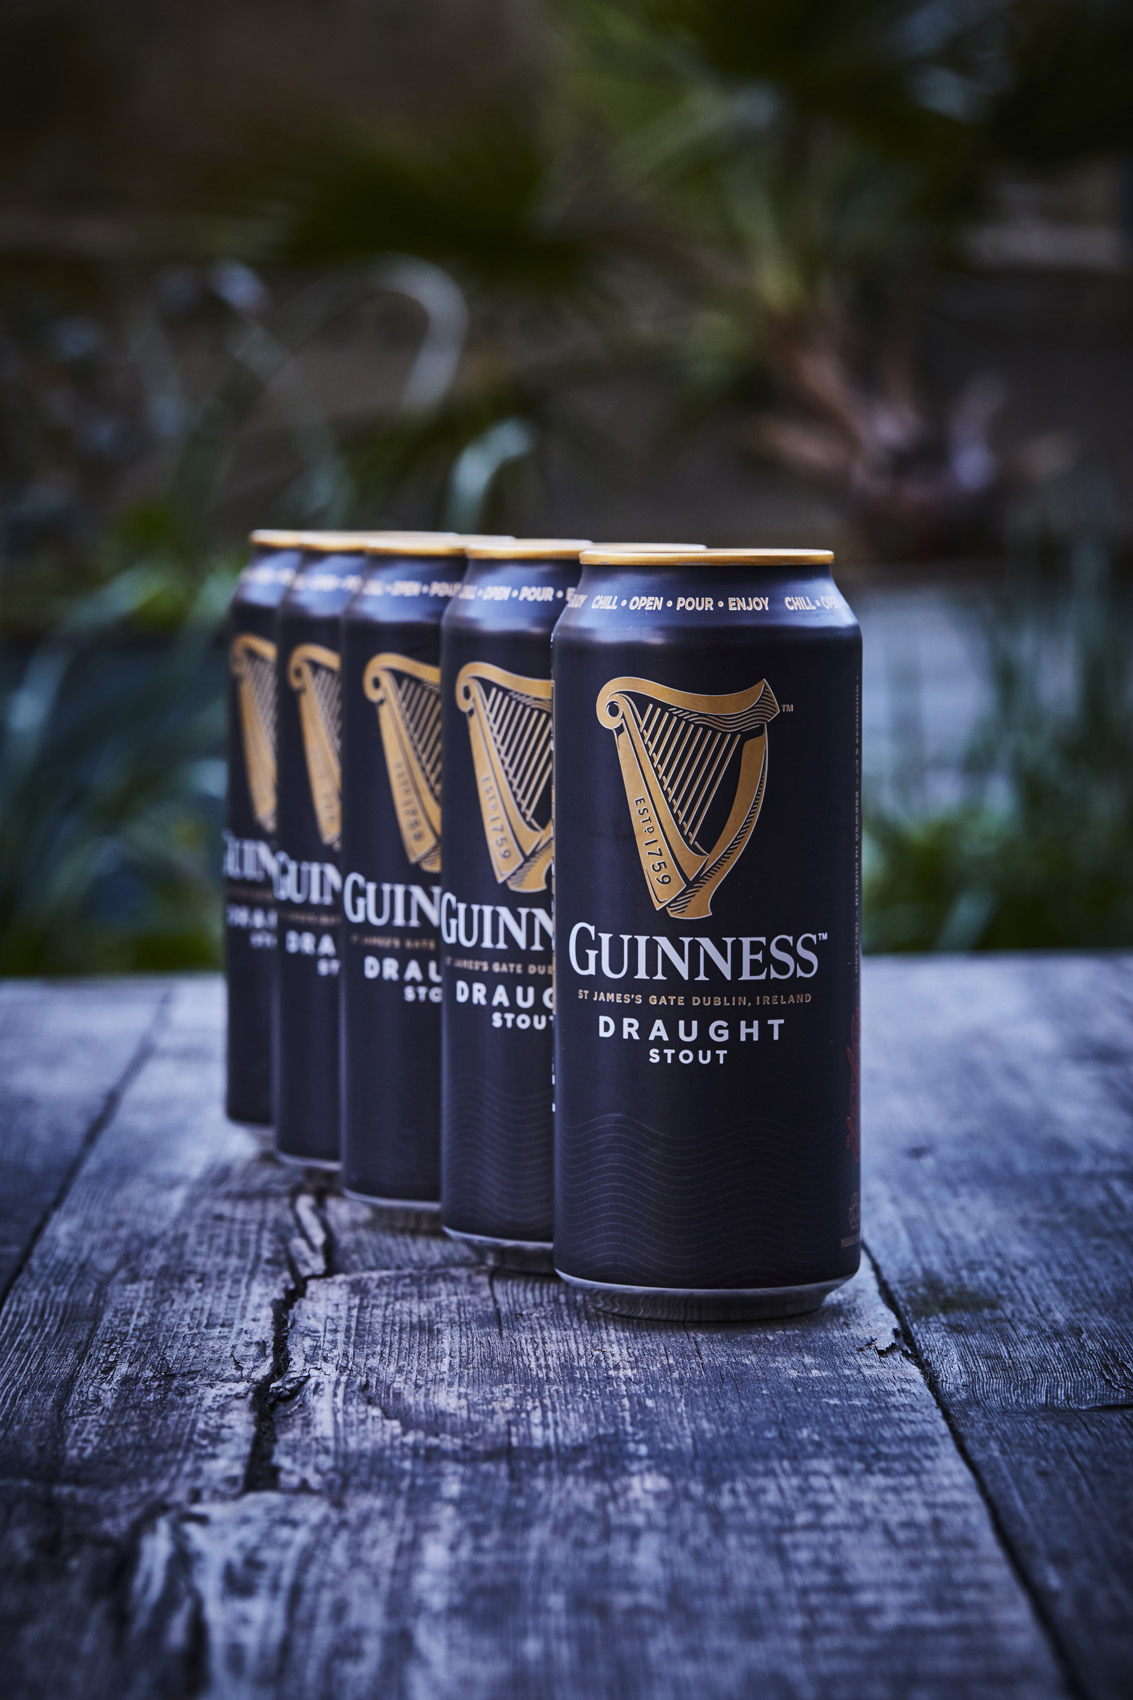 SteveRyan_Photographer_Drink_Beer_Guinness_Cans_04